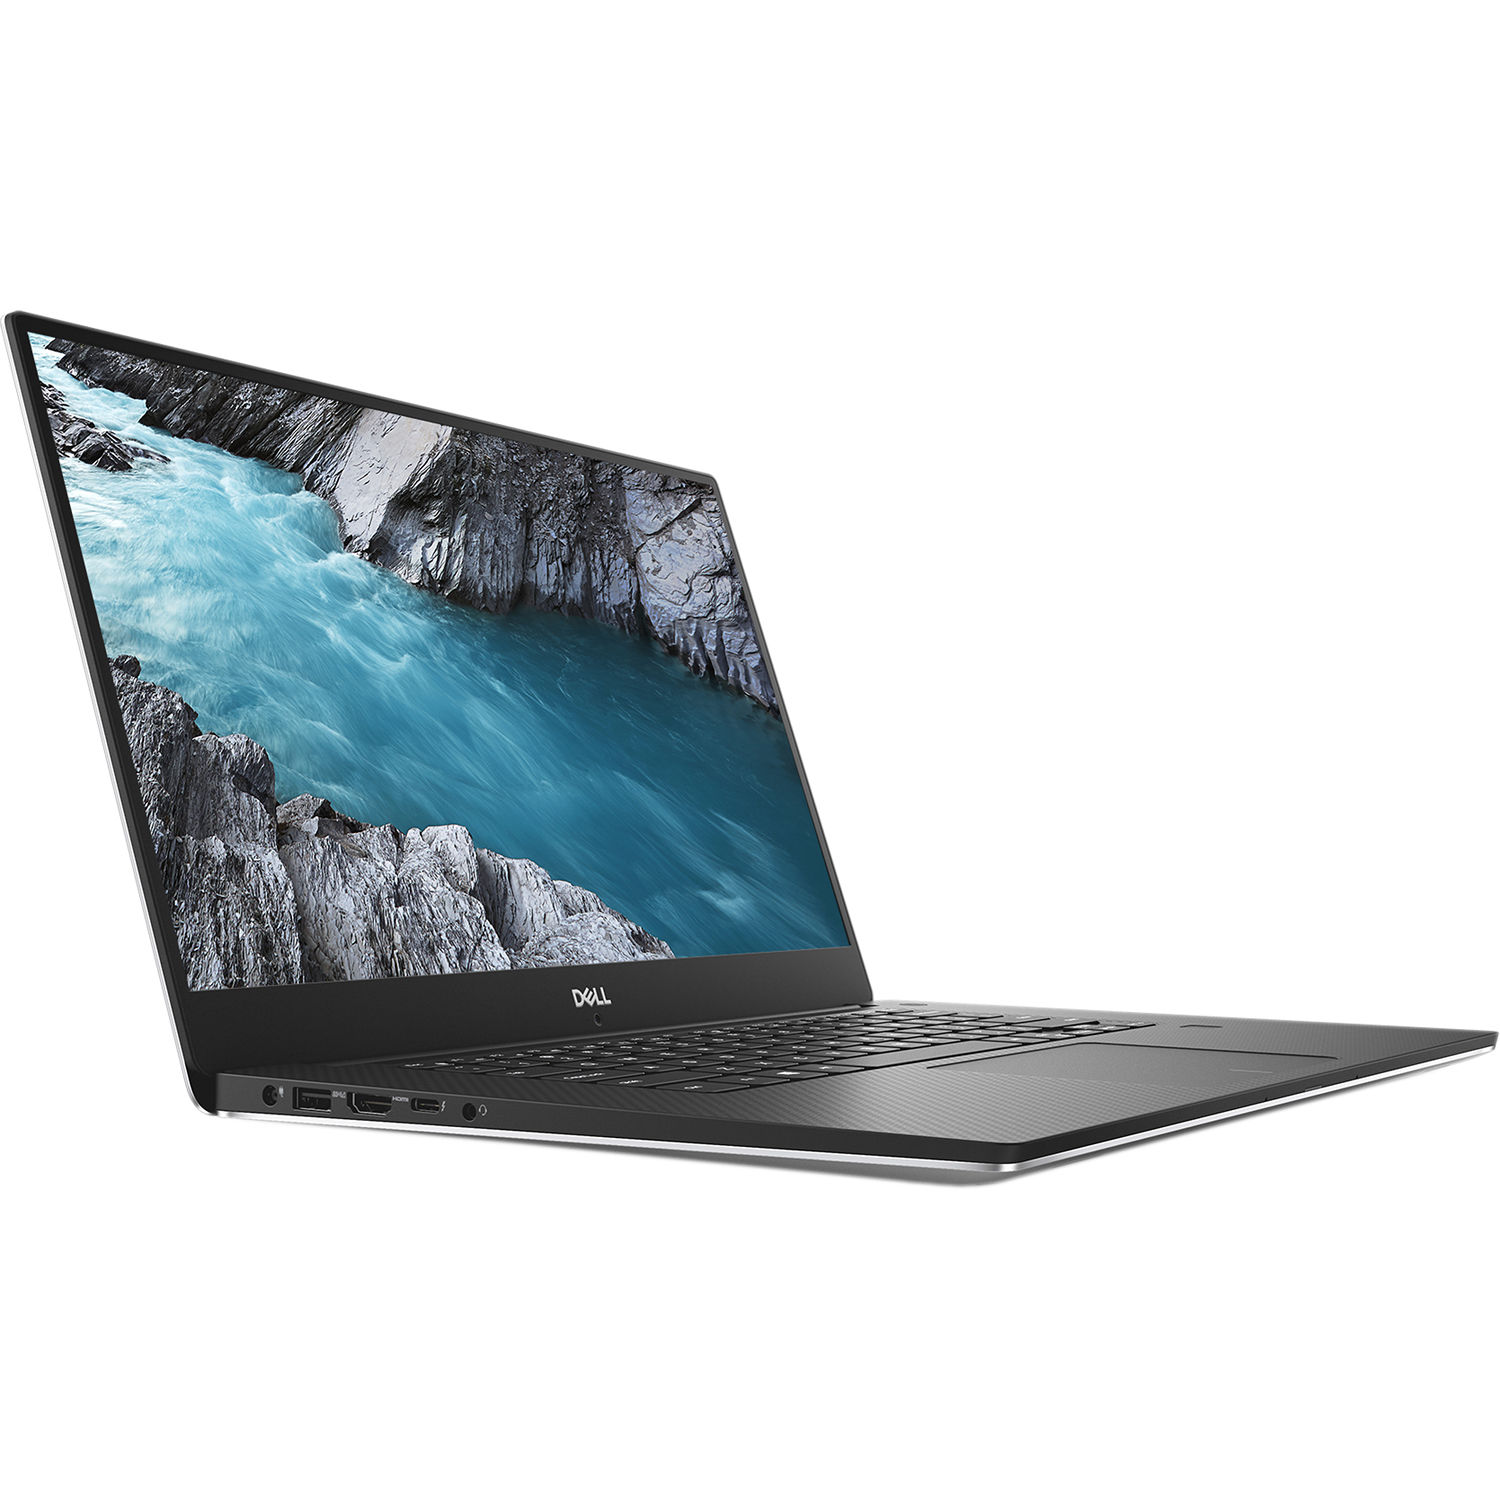 Dell XPS 15 9570 Slow